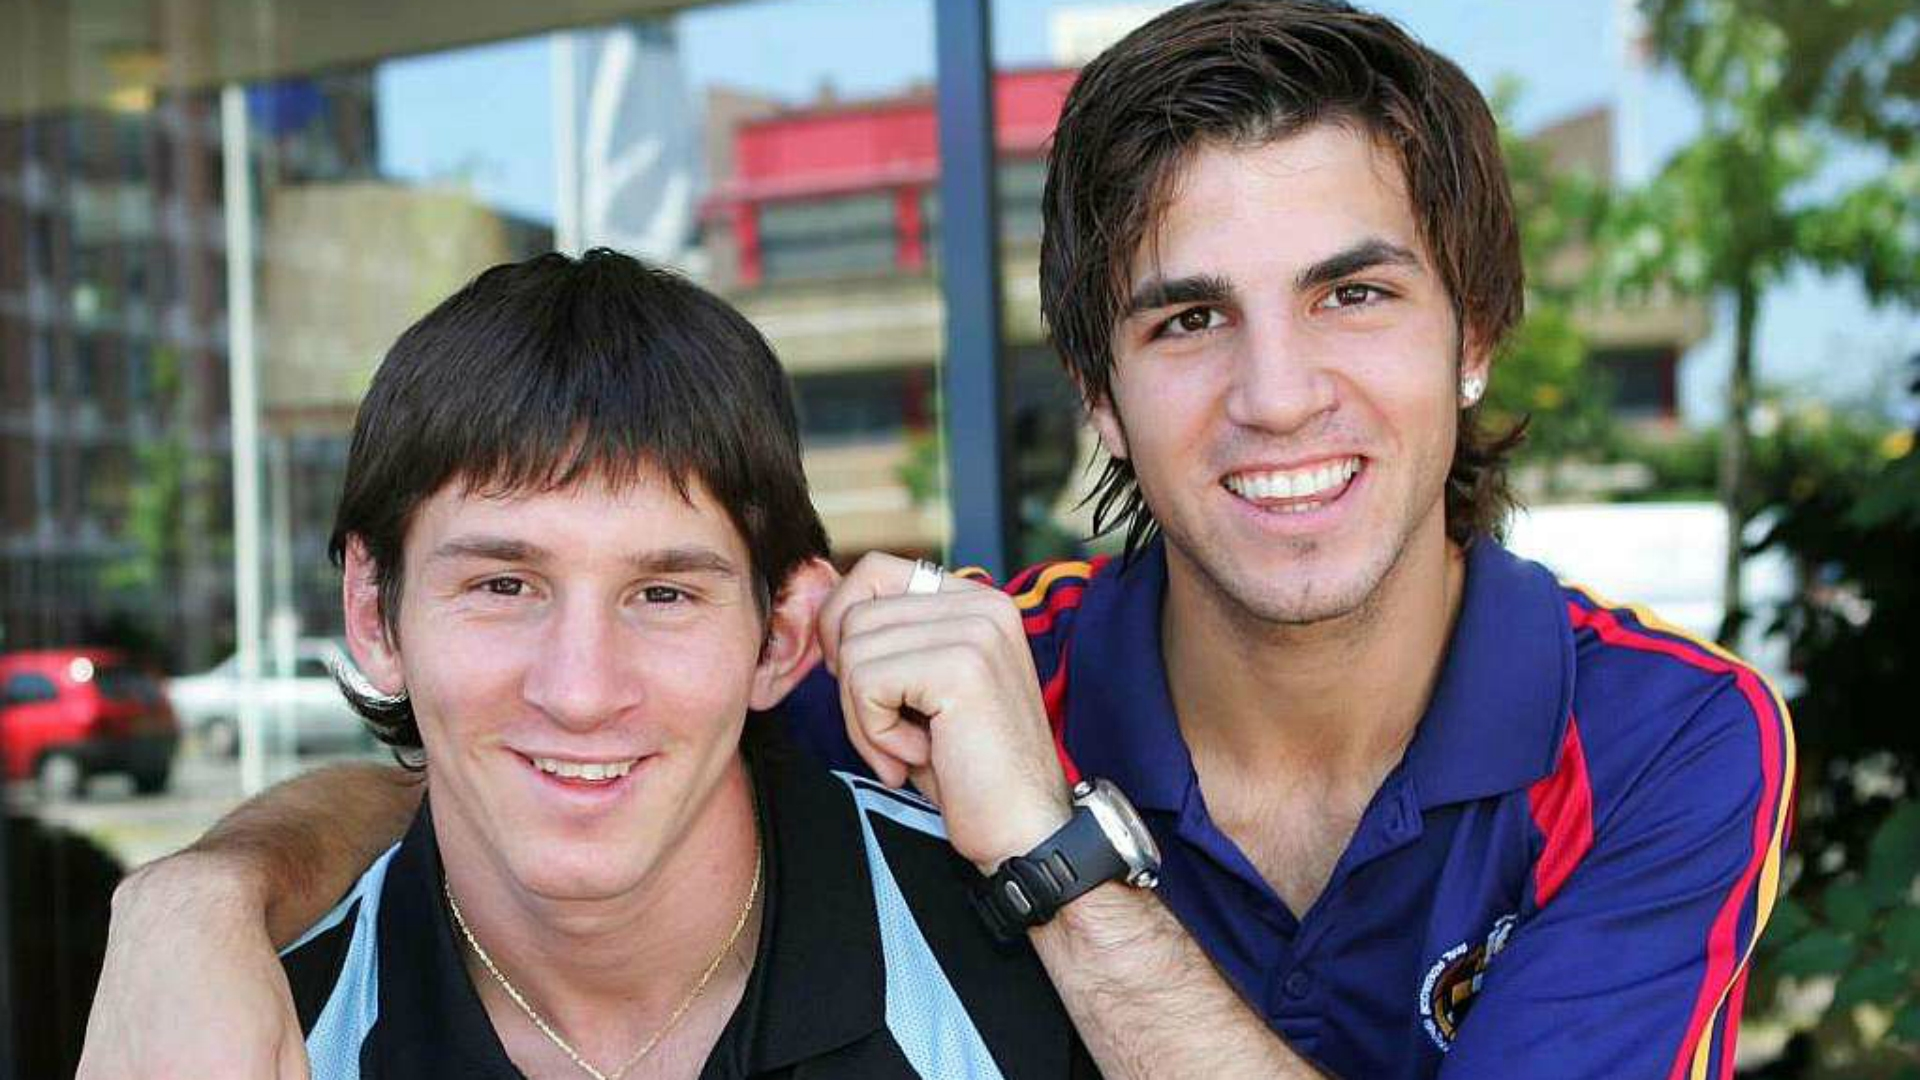 e148e758722213 The story of Lionel Messi's first days at Barcelona | Goal.com